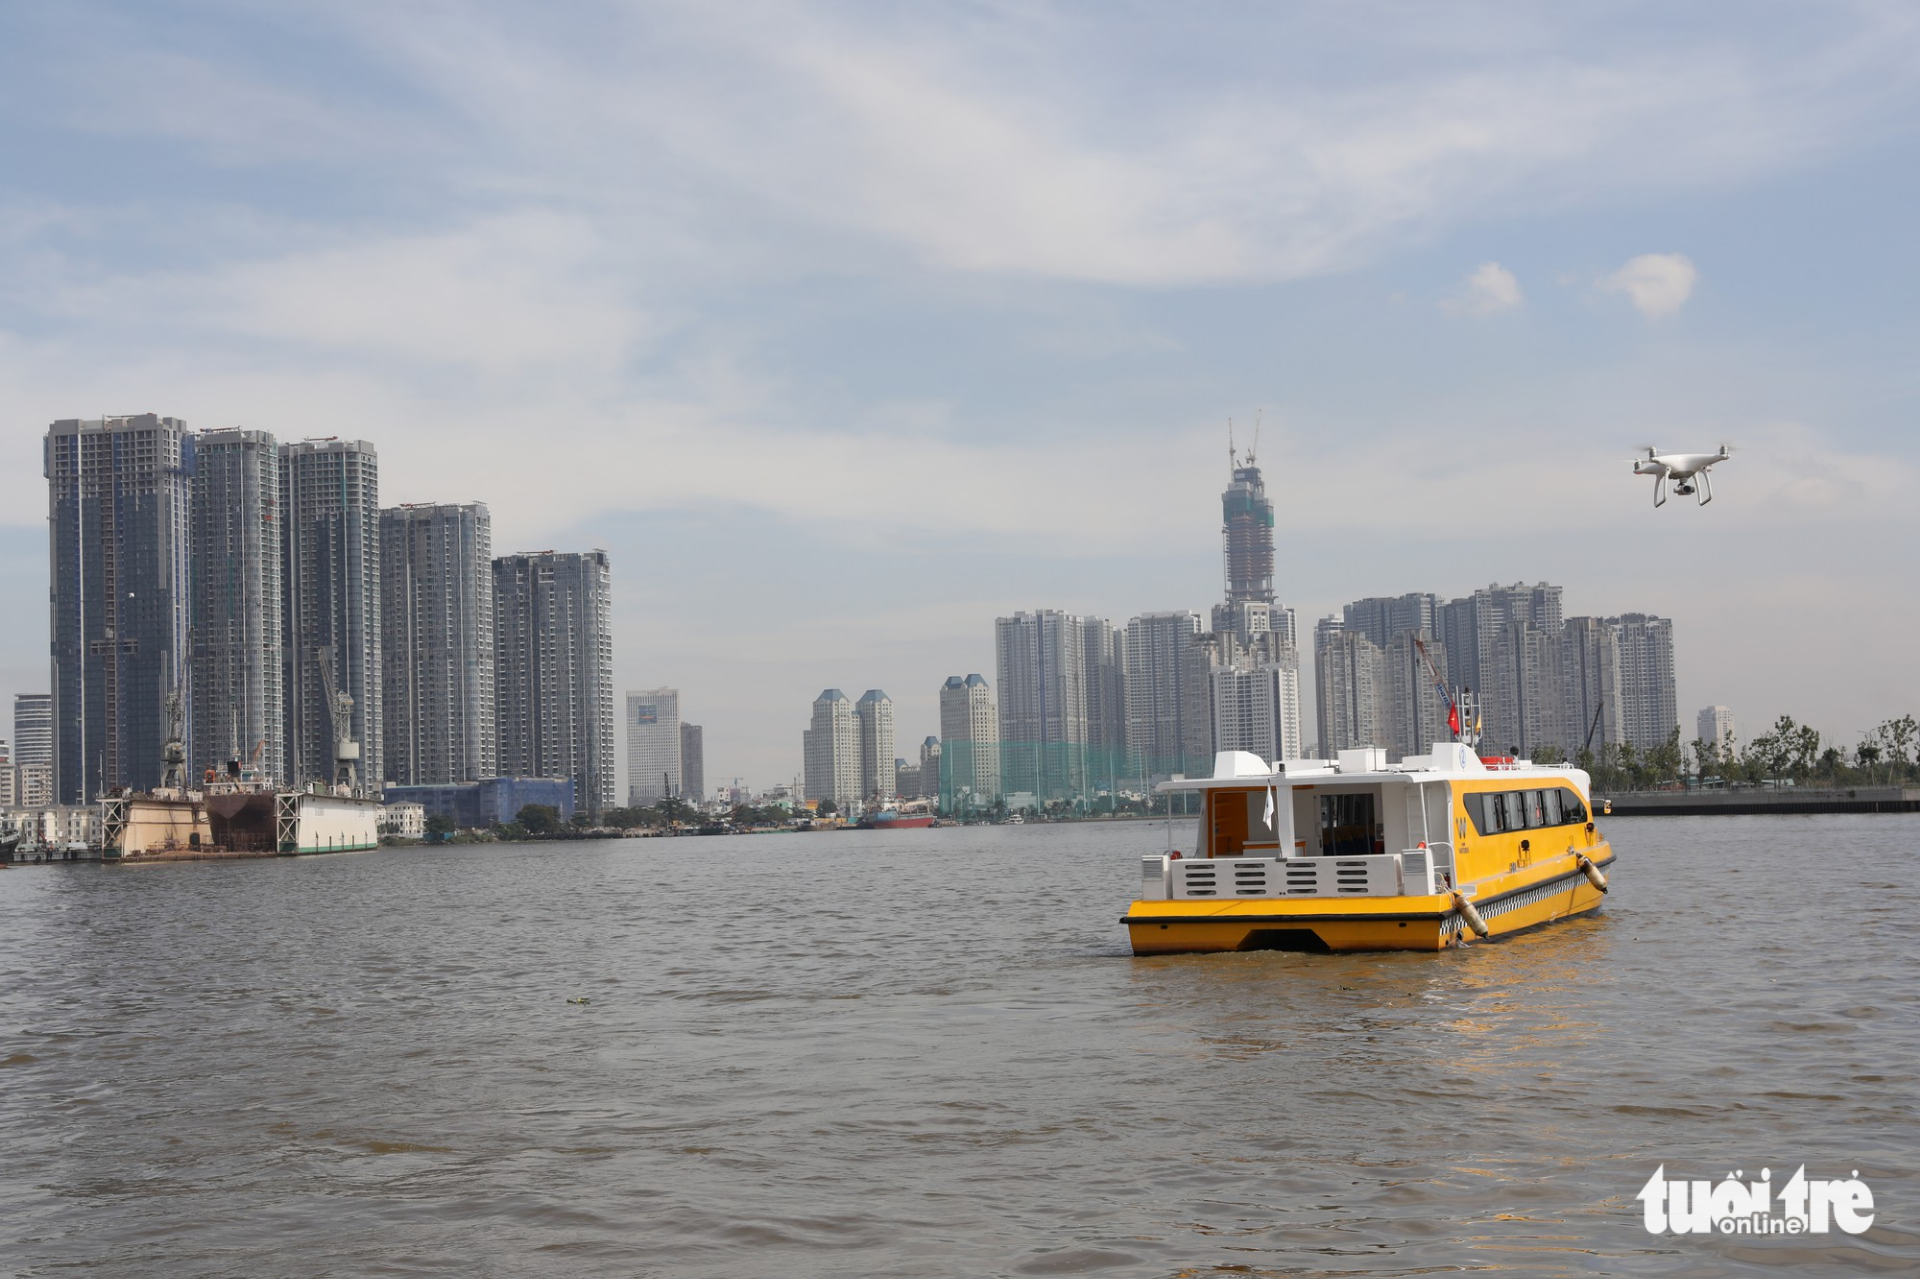 A boat operates along the waterbus route No. 1.